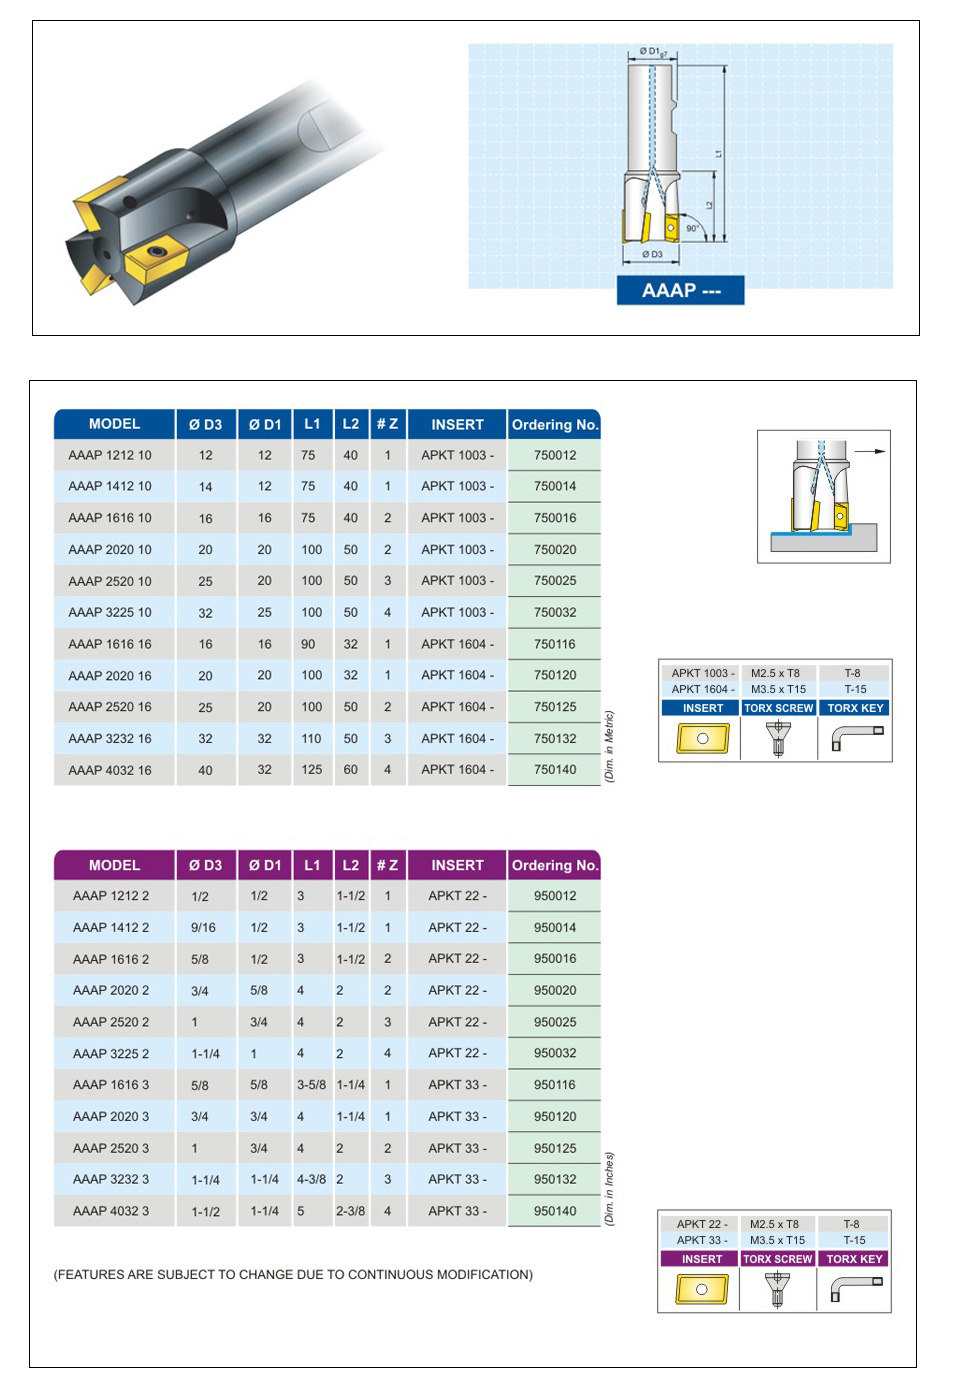 'Glanze - Industrial Tools Manufacturers India' from the web at 'http://www.glanze.com/indexable-tool-holders/../products/cartridges/cartridges-aaap---.jpg'